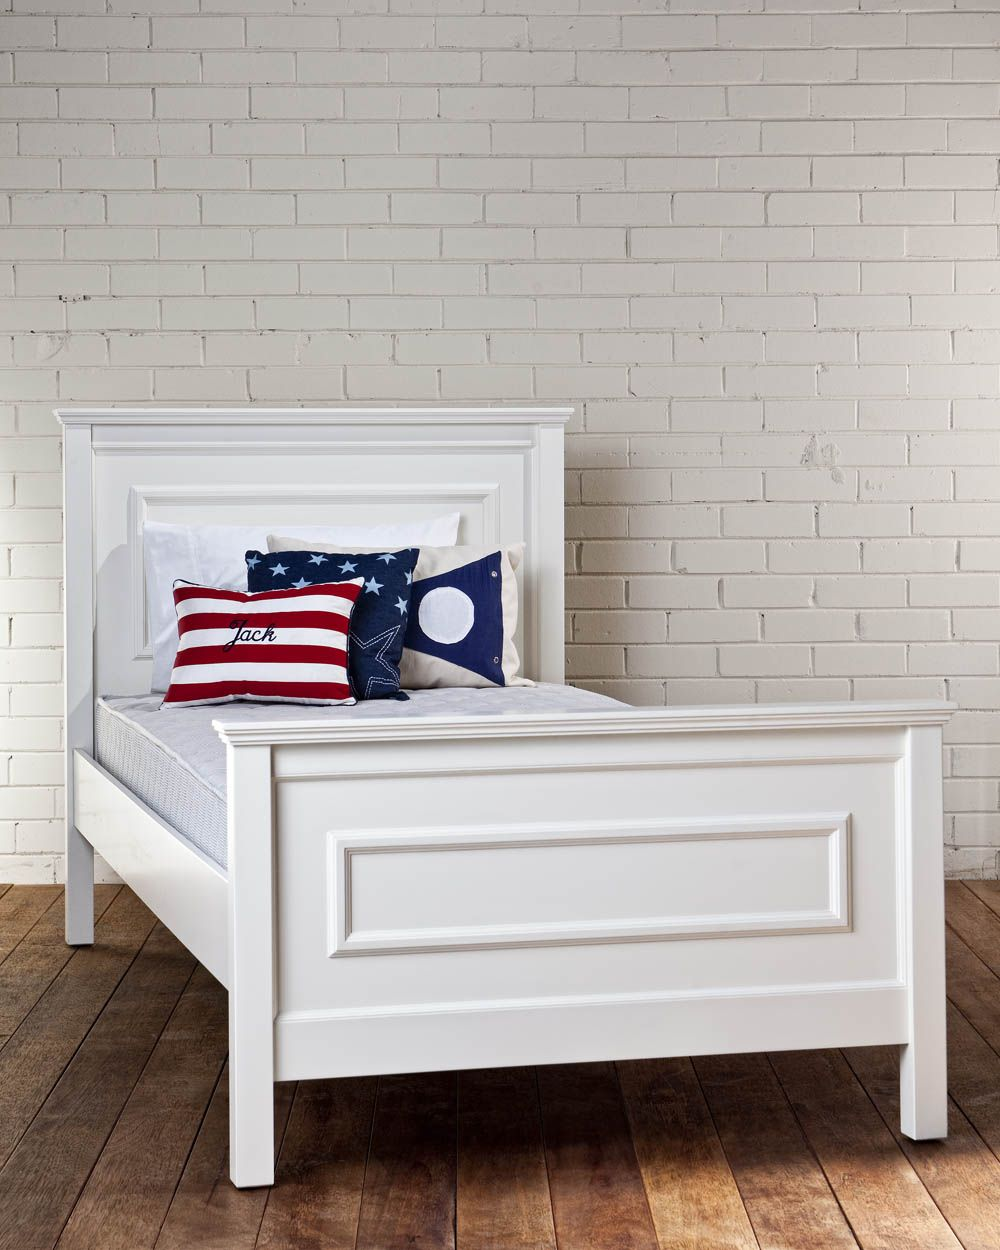 Single bed frame design - 14 Lovable And Cute Kids Bed Designs You Must Have Exquisite Washington King Single Bed